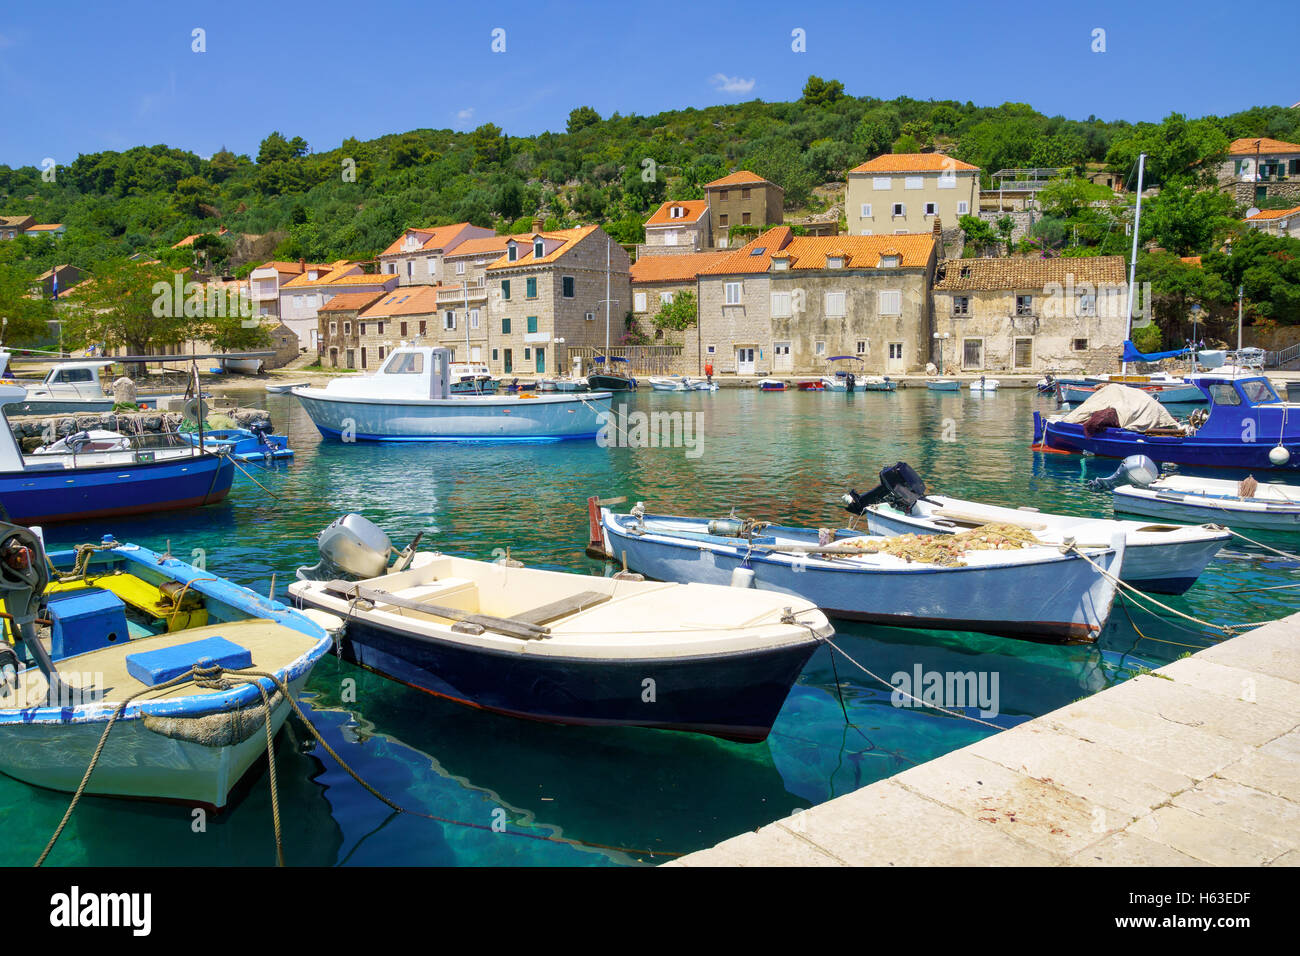 View of the fishing port, in the village Sudurad, Sipan Island, one of the Elaphiti Islands, Croatia - Stock Image